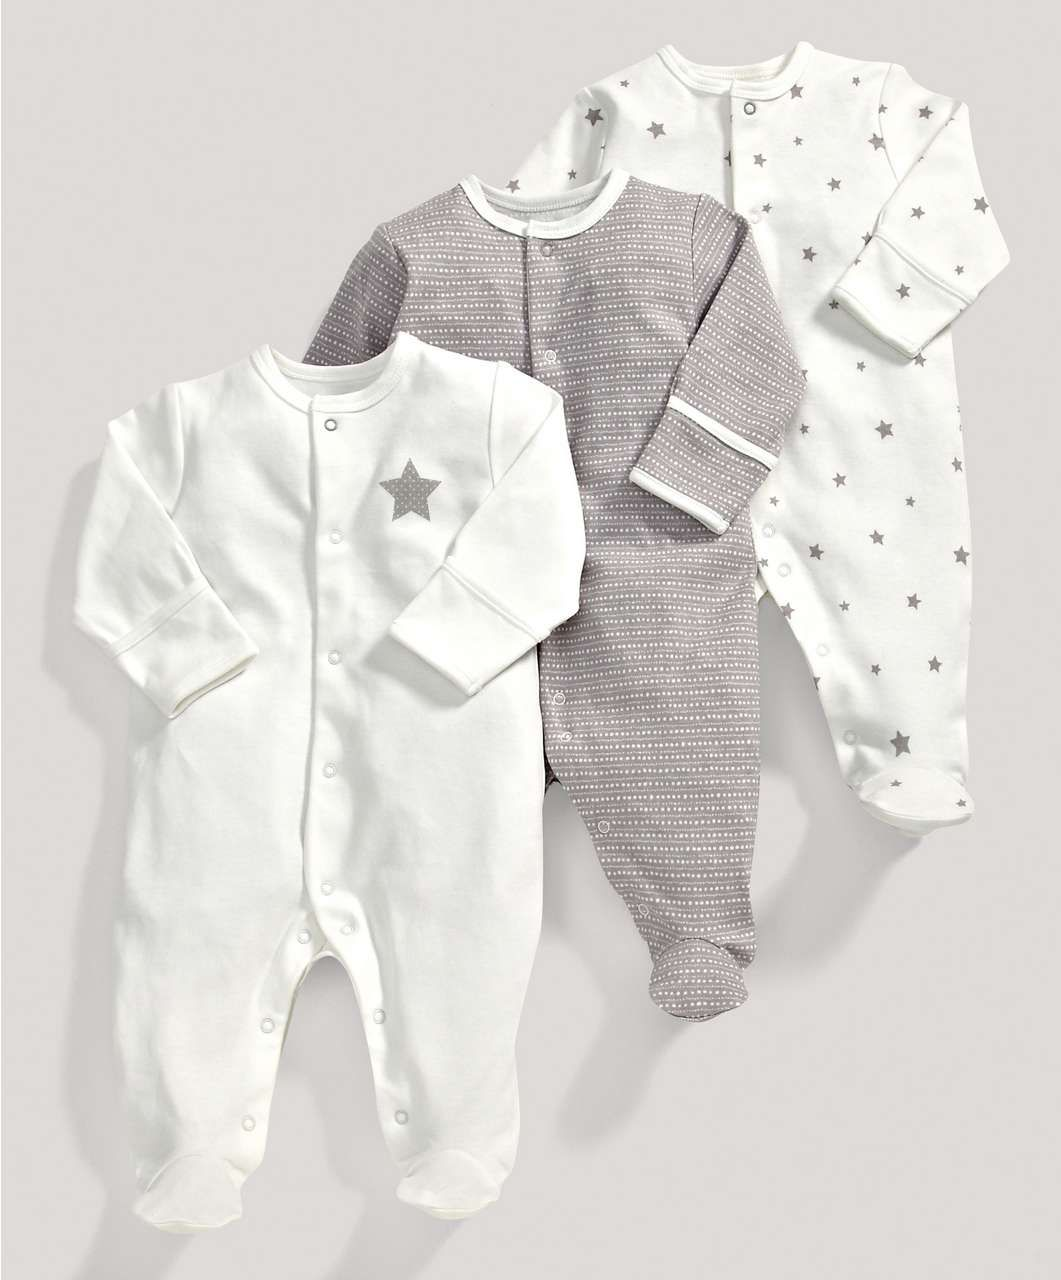 Unisex Essentials Three Pack Of Millie And Boris All In